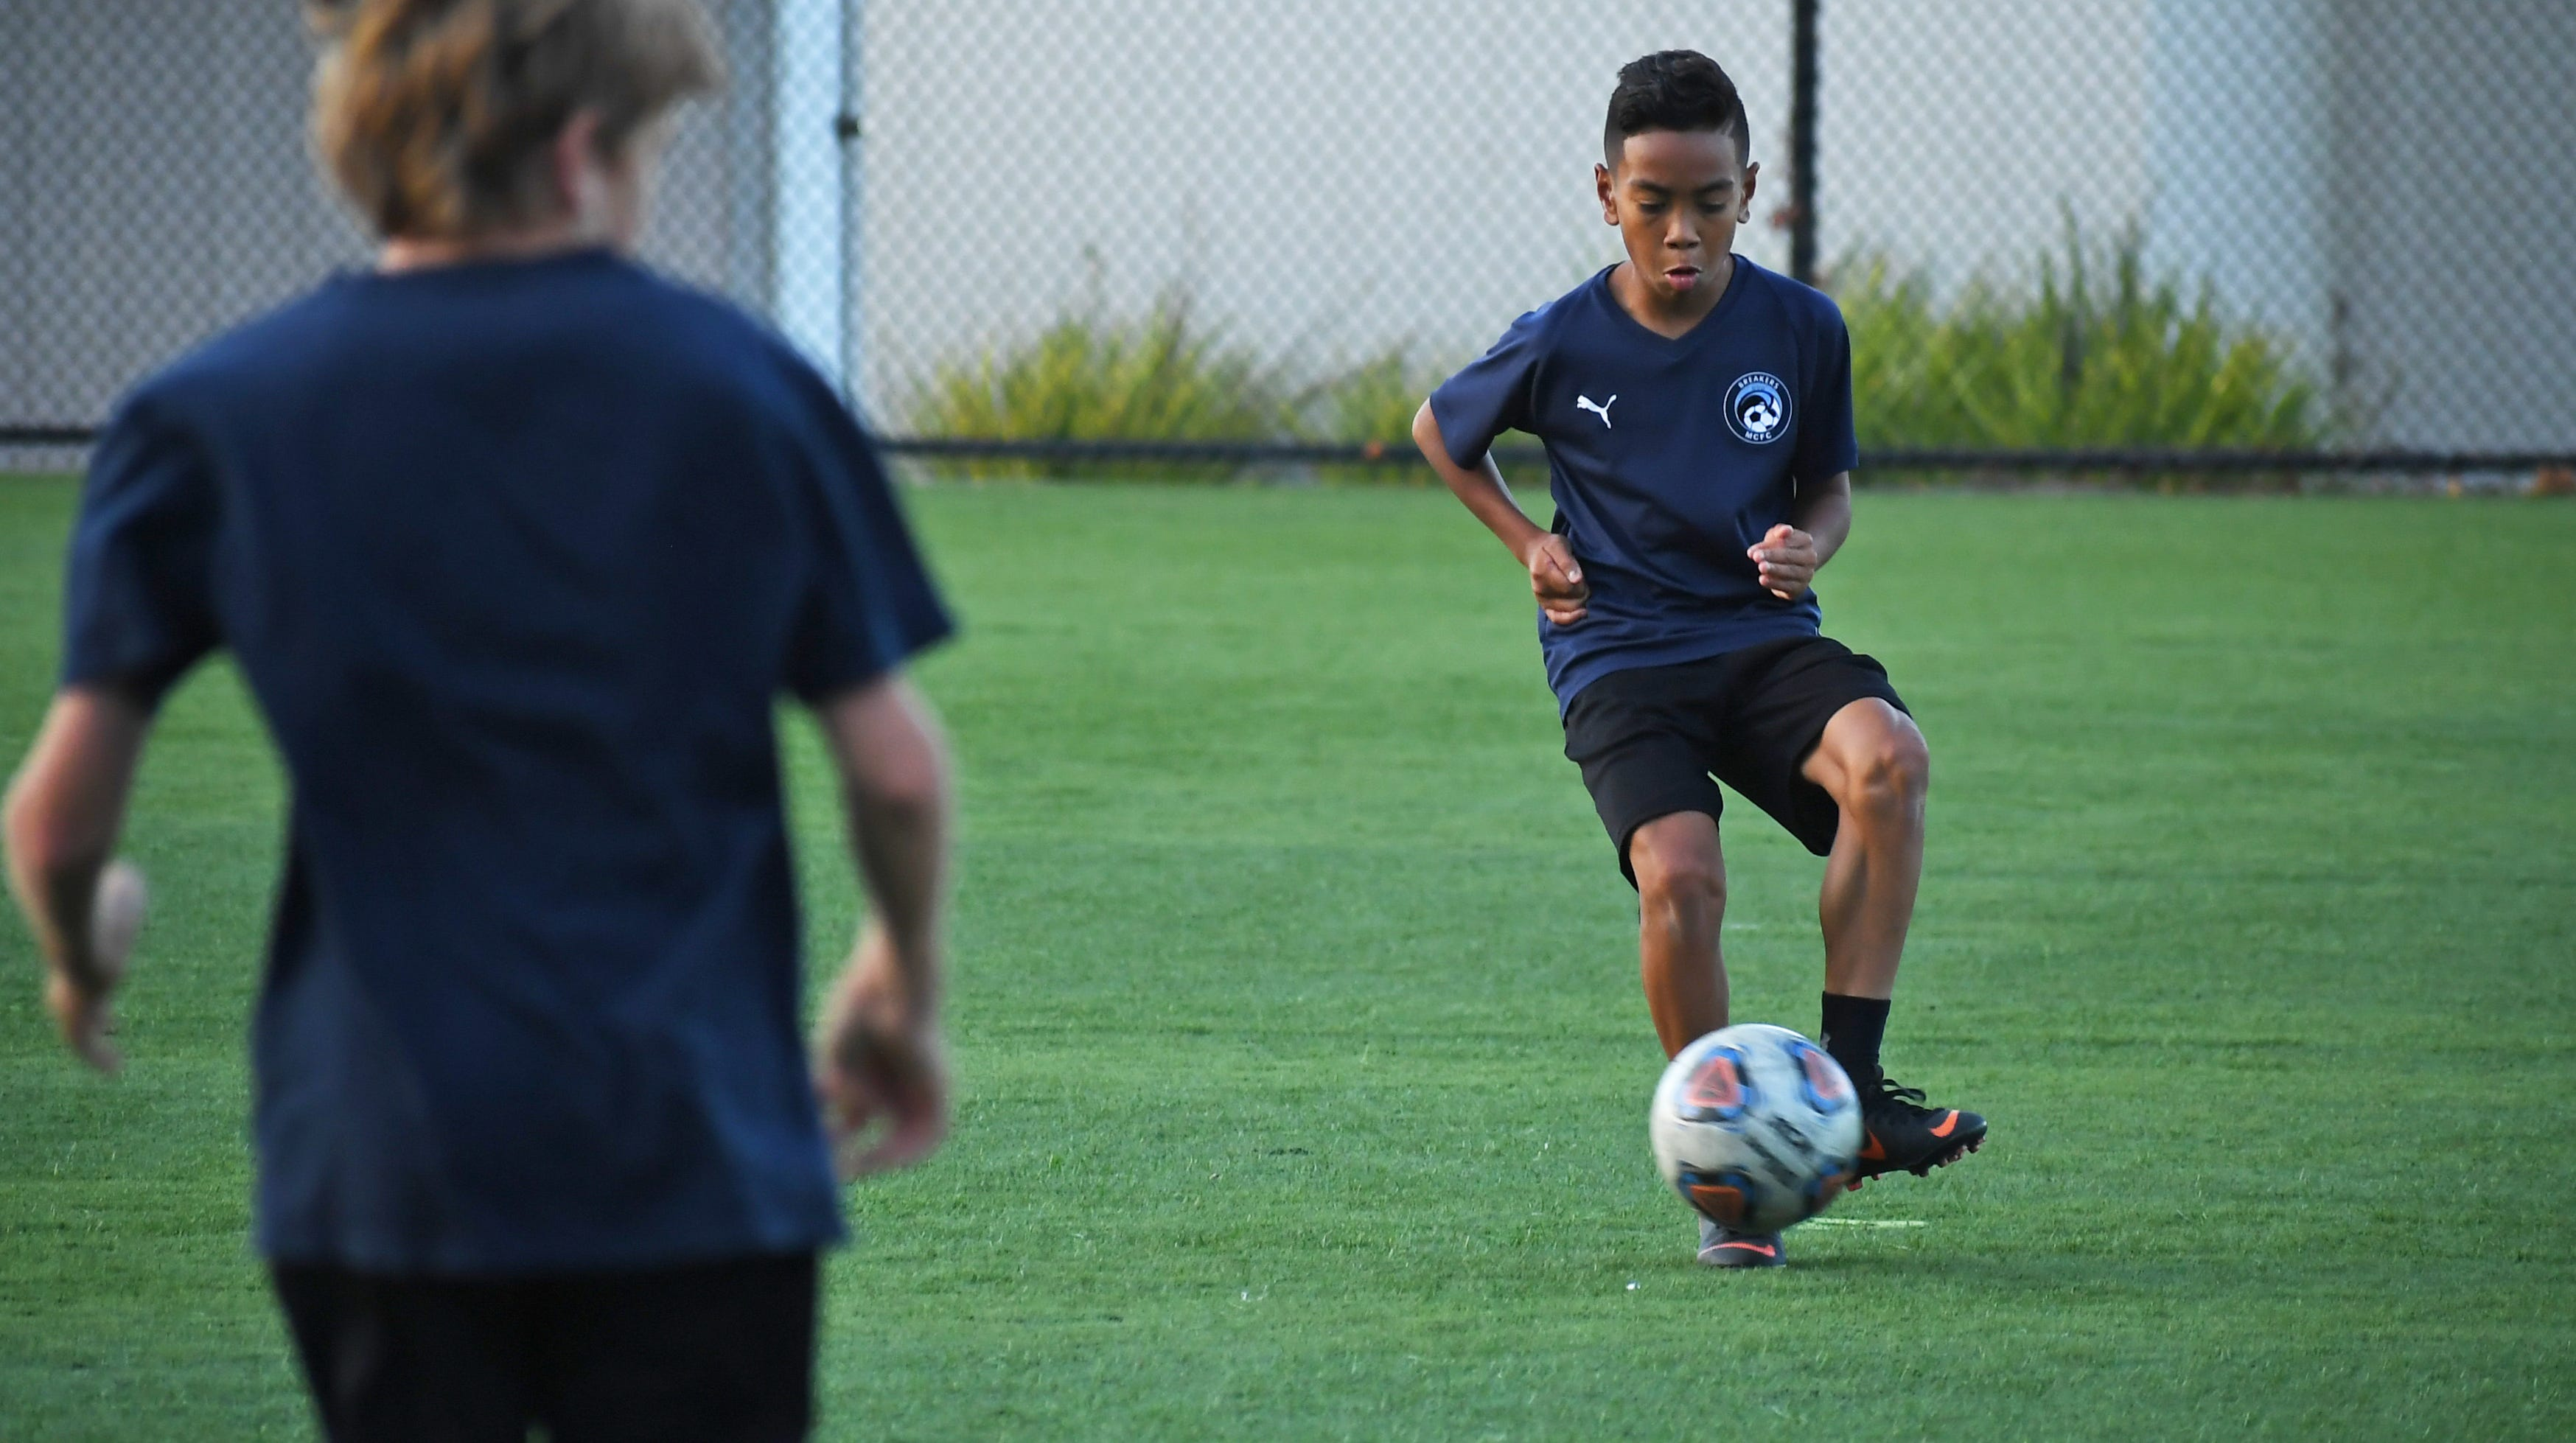 Meet the Seaside 12-year-old training with FC Barcelona